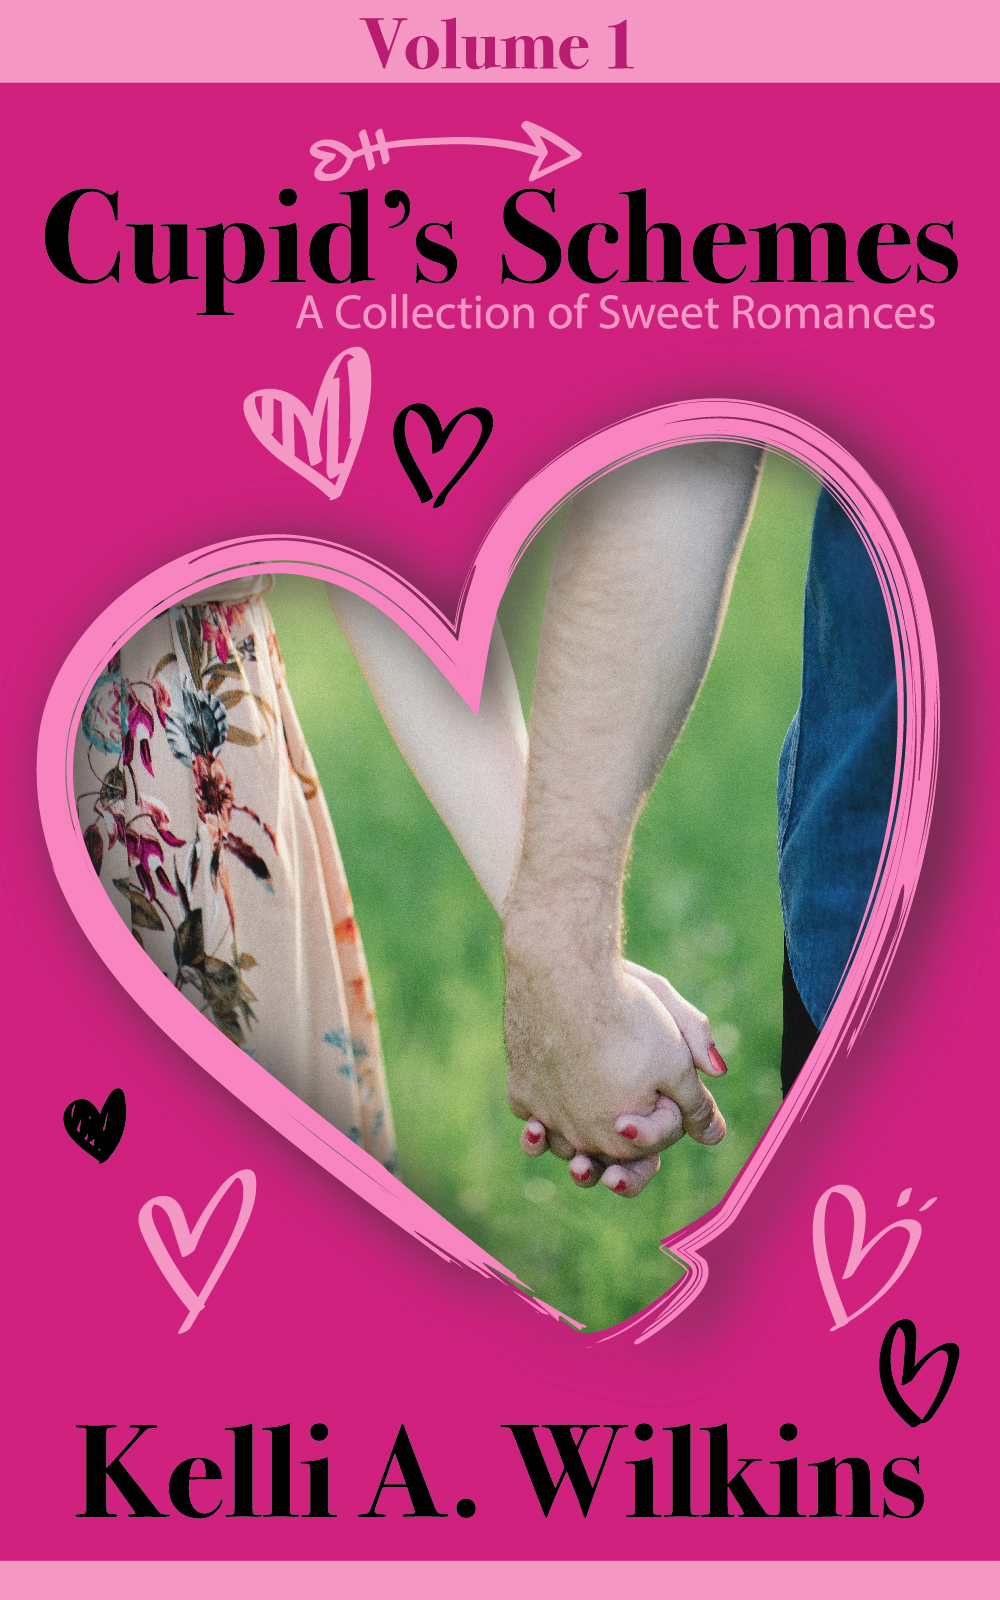 Cupid's Schemes - A collection of Sweet Romances by Kelli A. Wilkins #sweetromance #author #kelliwilkins